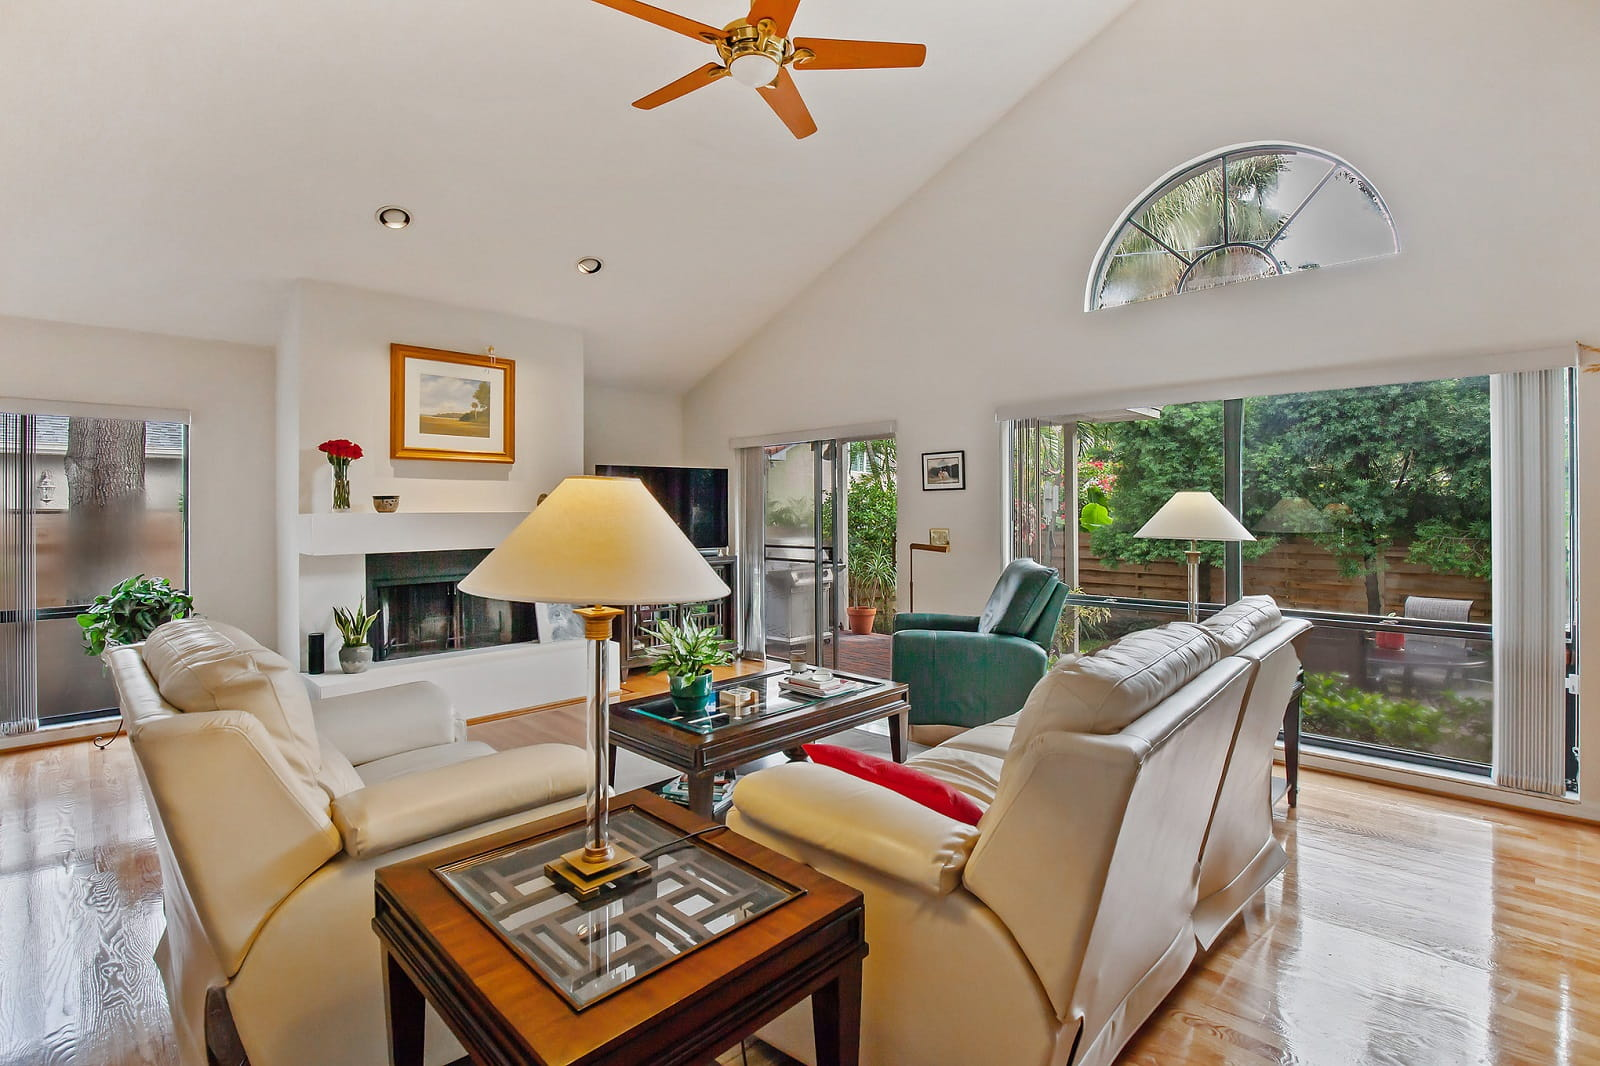 Real Estate Photography in Tampa - FL - USA - Living Area View